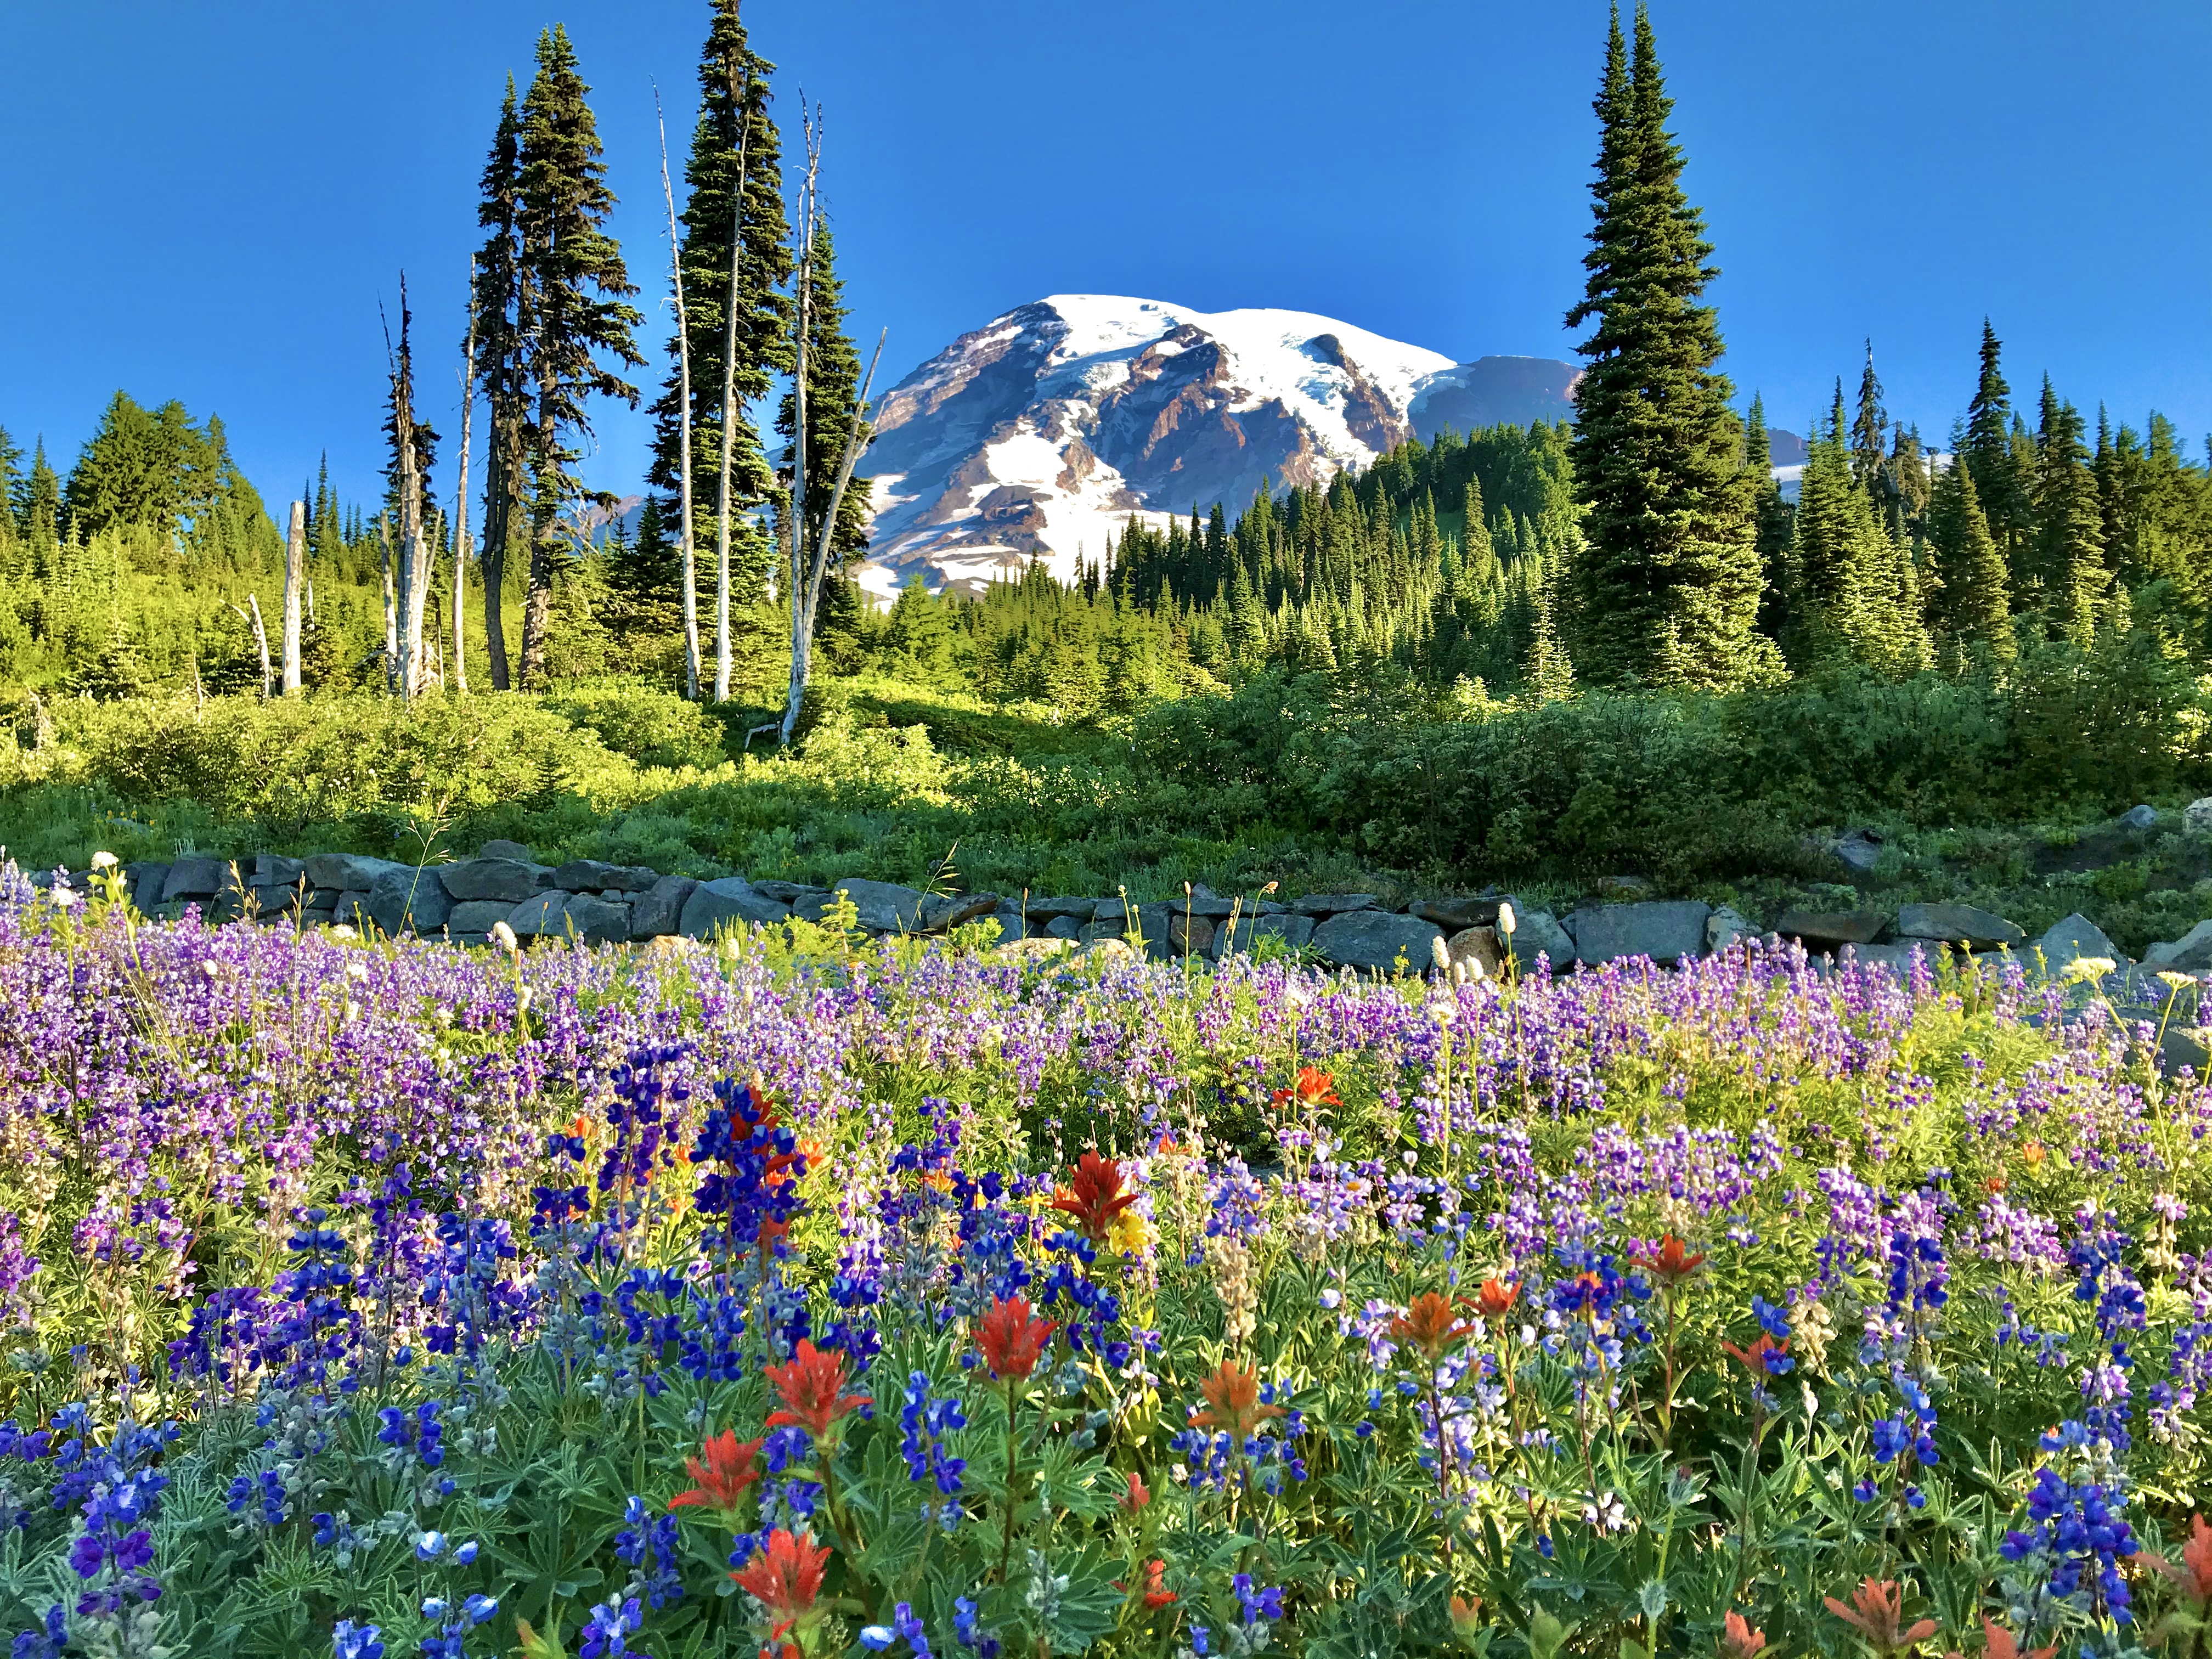 west-coast-flower-hikes — Colorful wildflowers blossom as a mountain rises in the distance.